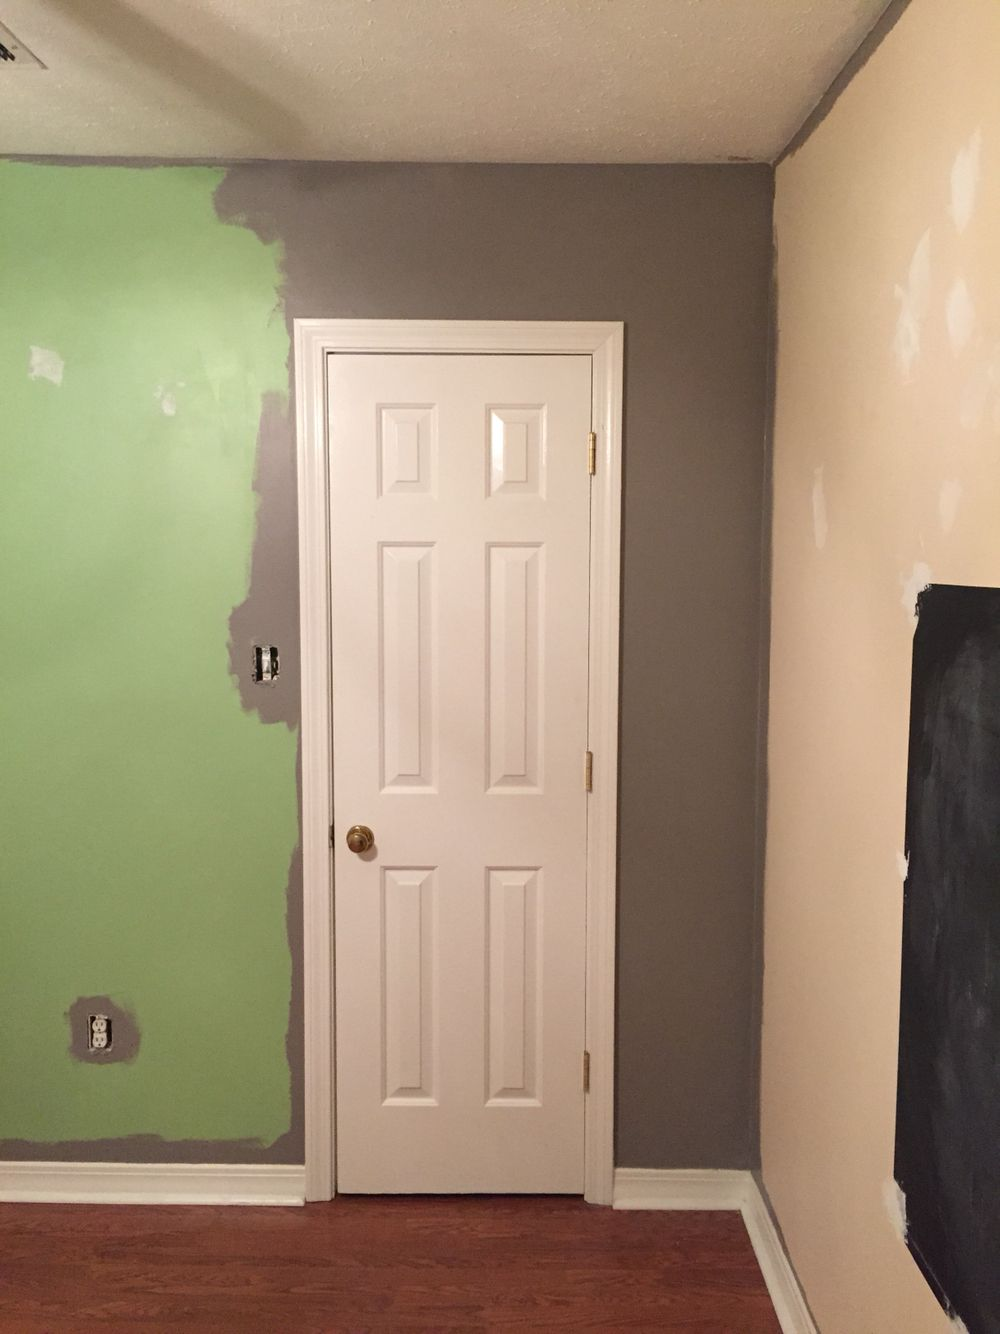 Wood Colored Paint Polished Concrete Sherwin Williams Painting Wood To Grey Grey